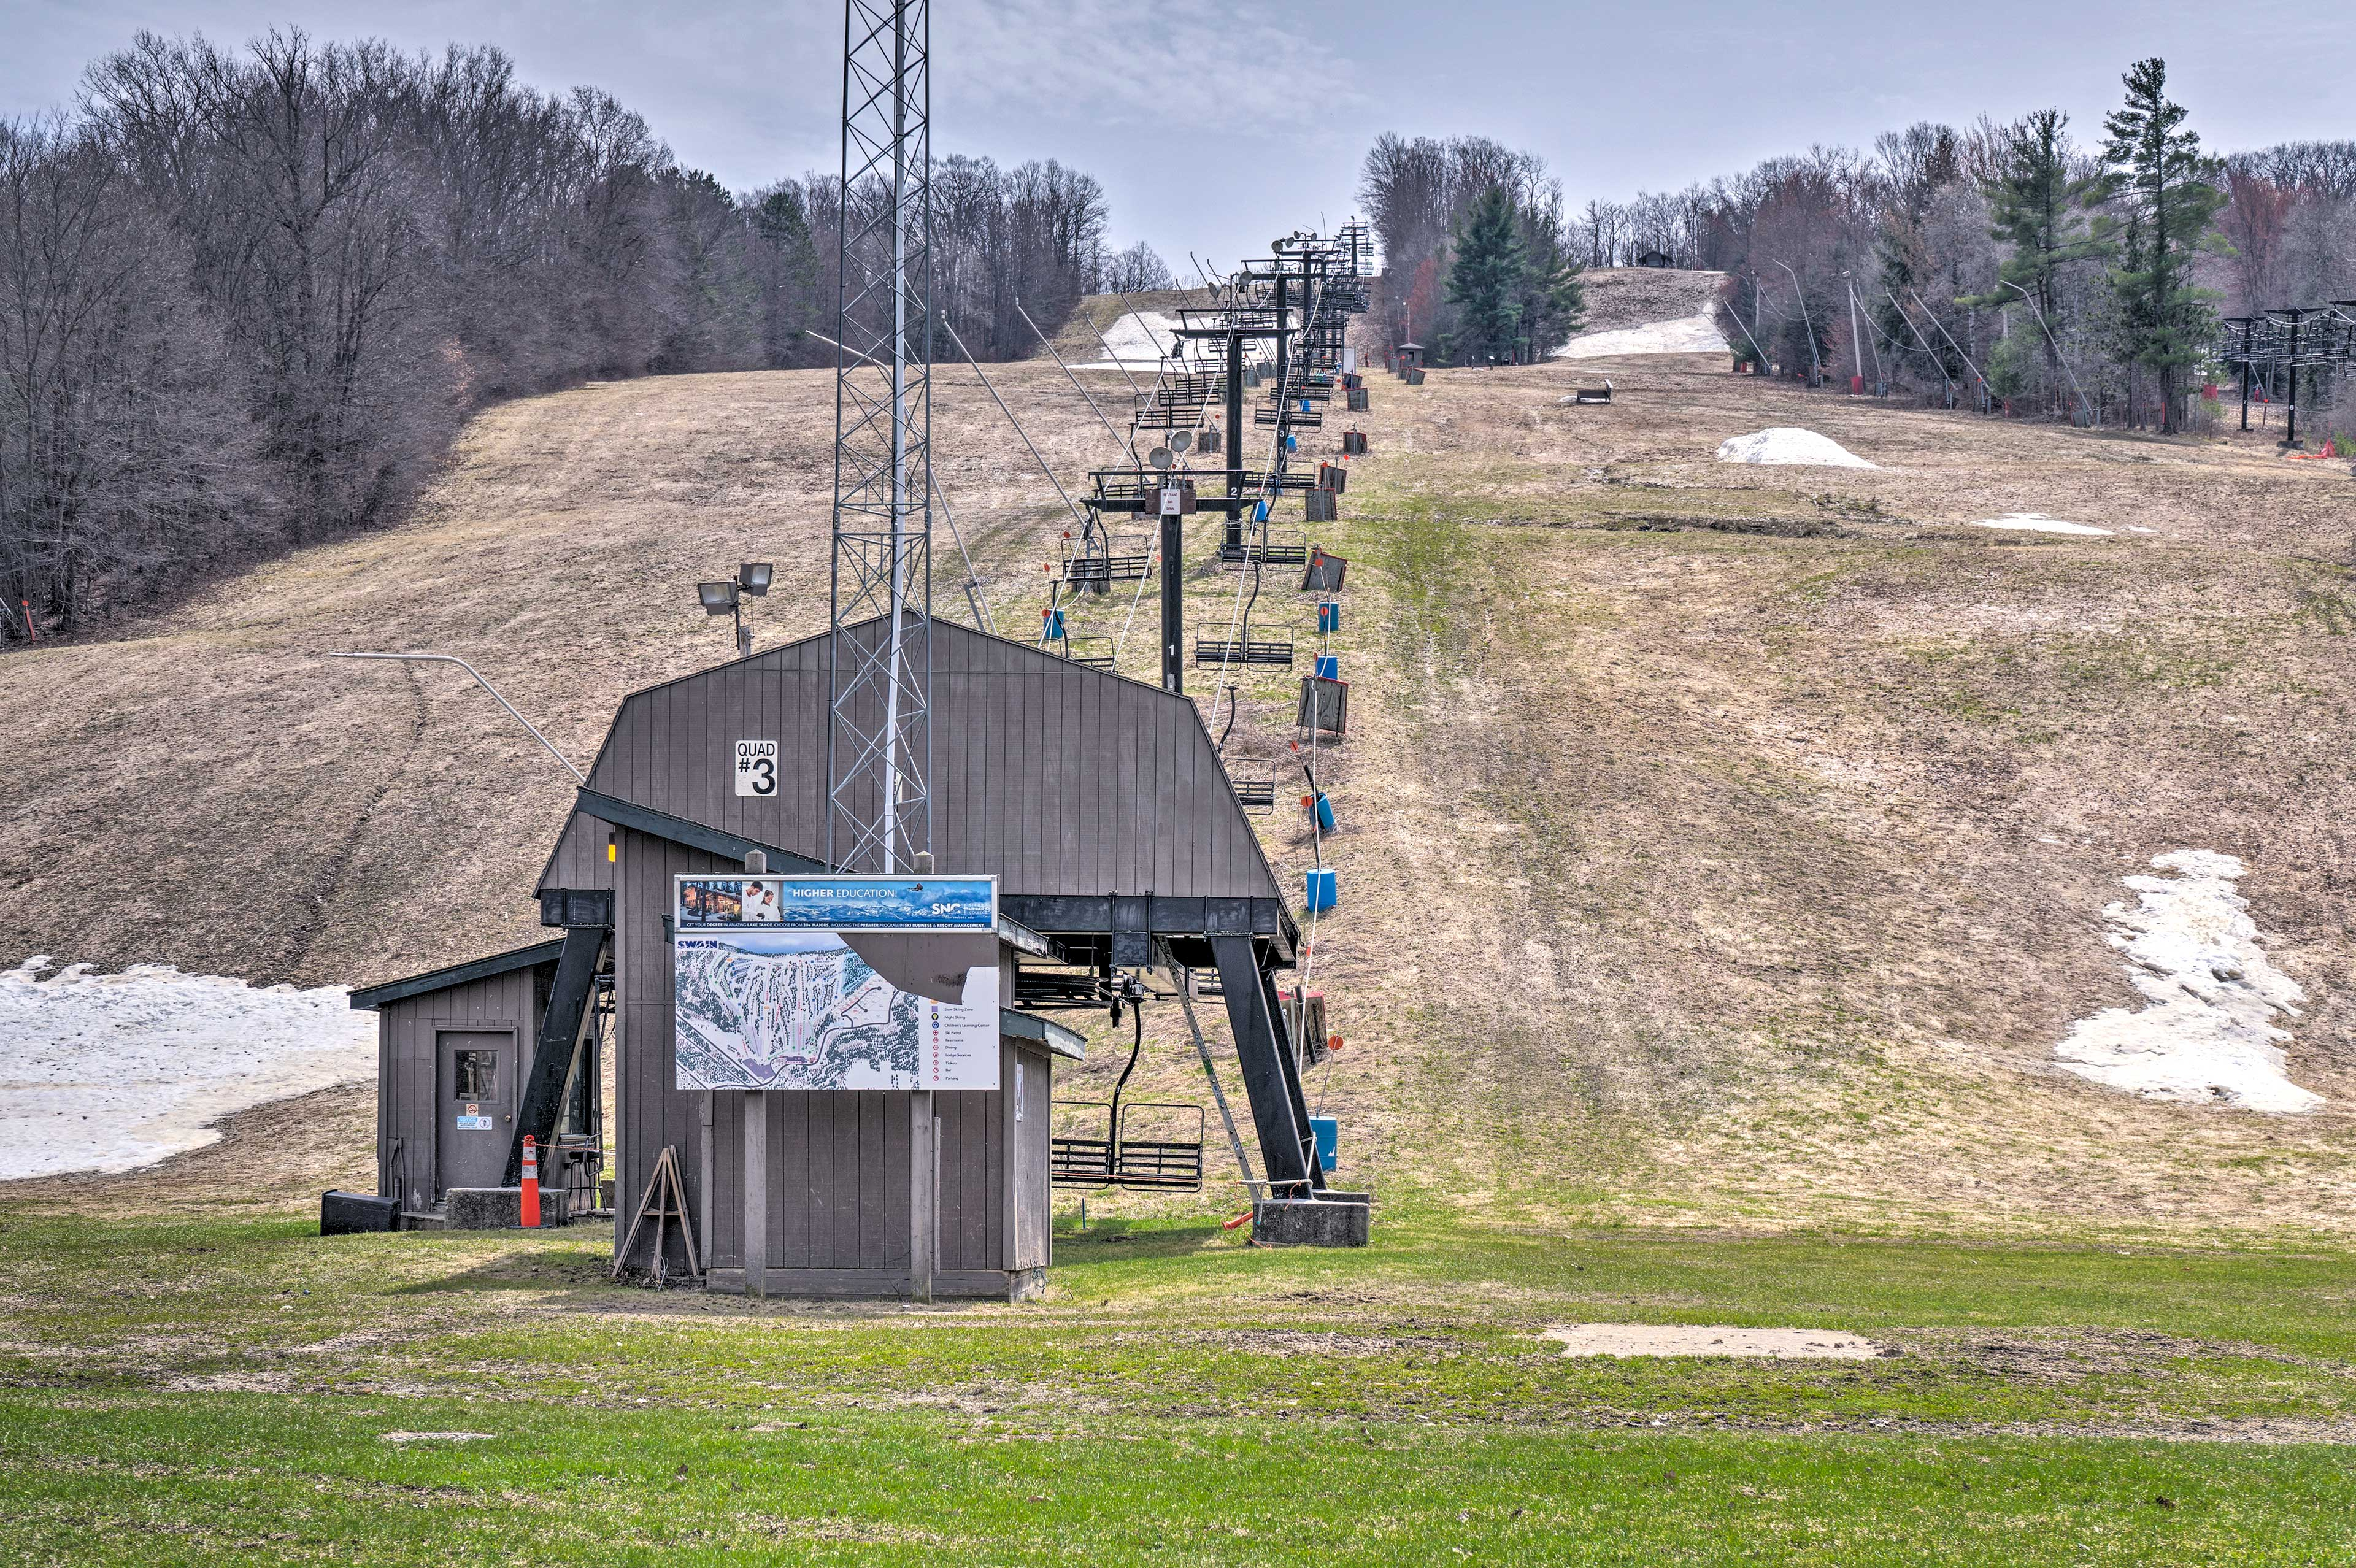 During the winter months, you can spend a day slopeside at Swain Resort!